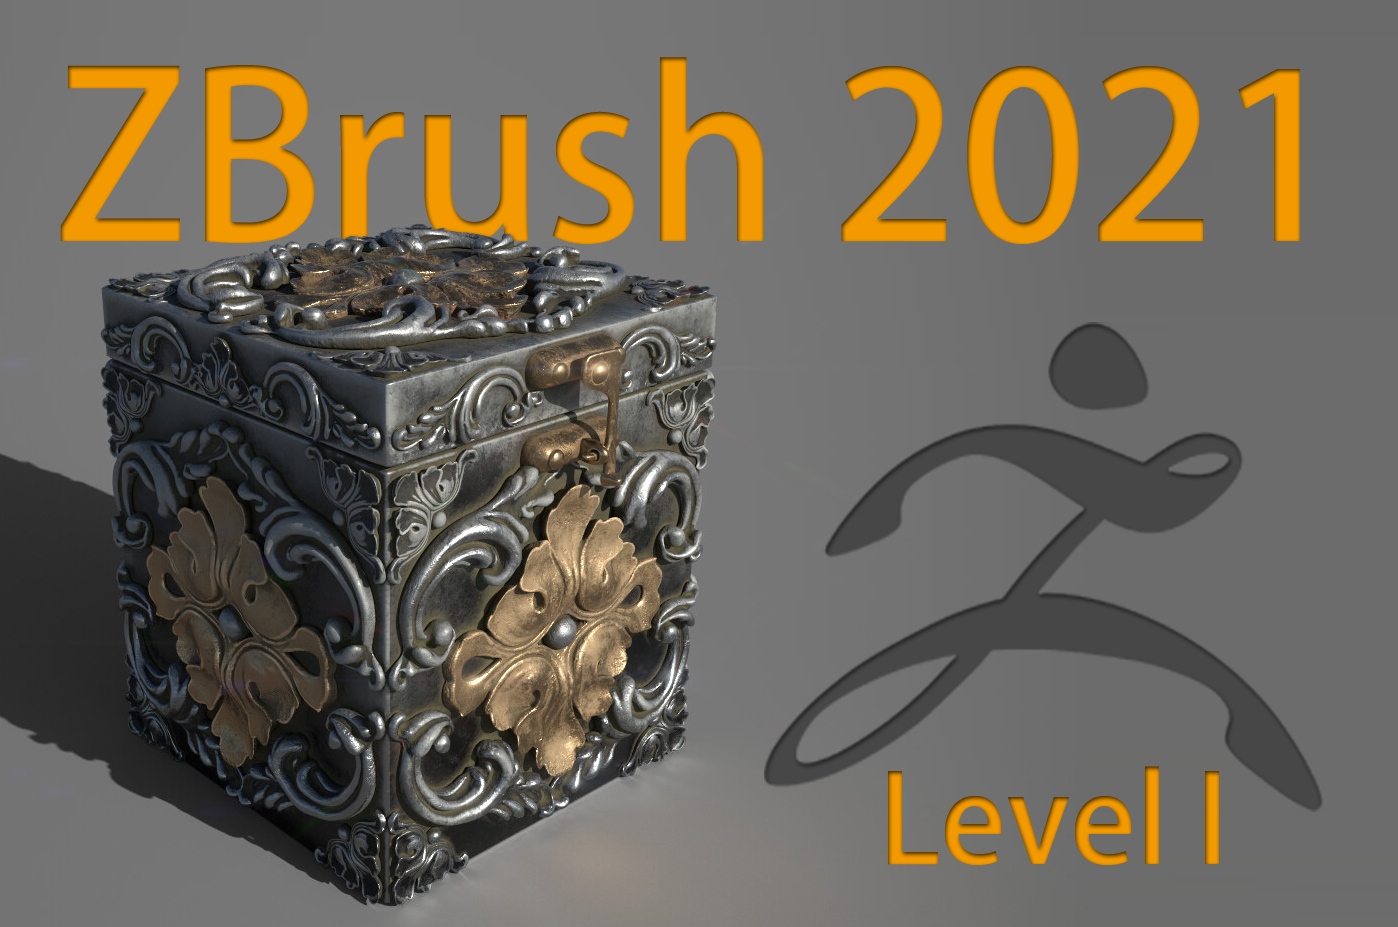 29.04.2021 | ZBrush Level 1 (10 Thursday evenings)